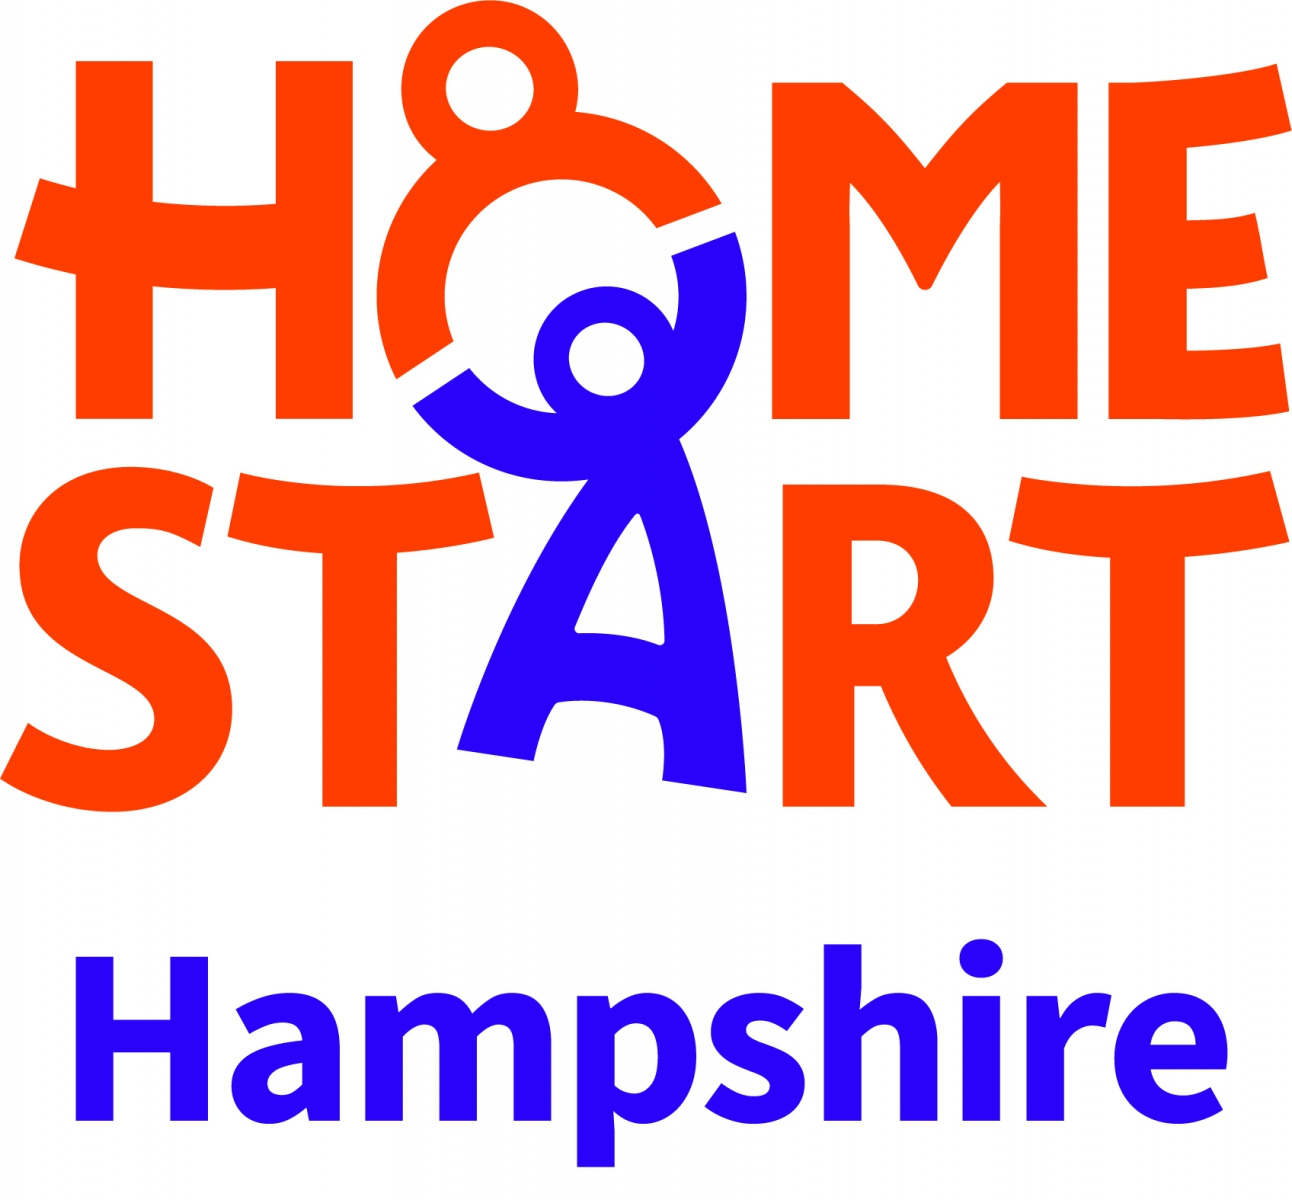 Home-Start Hampshire eCards